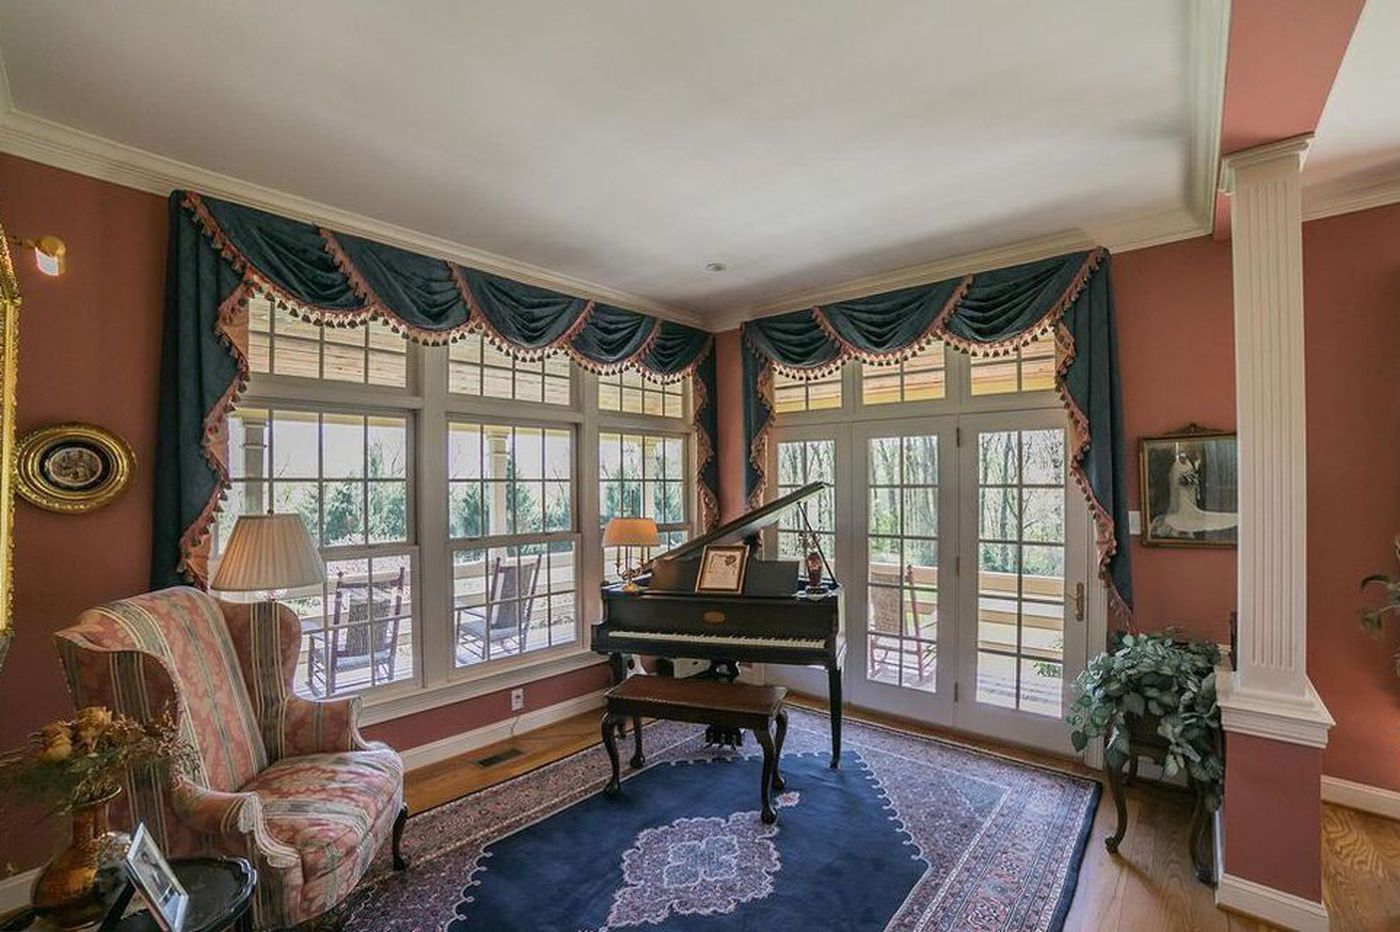 On the market: A Chester County house surrounded by countryside